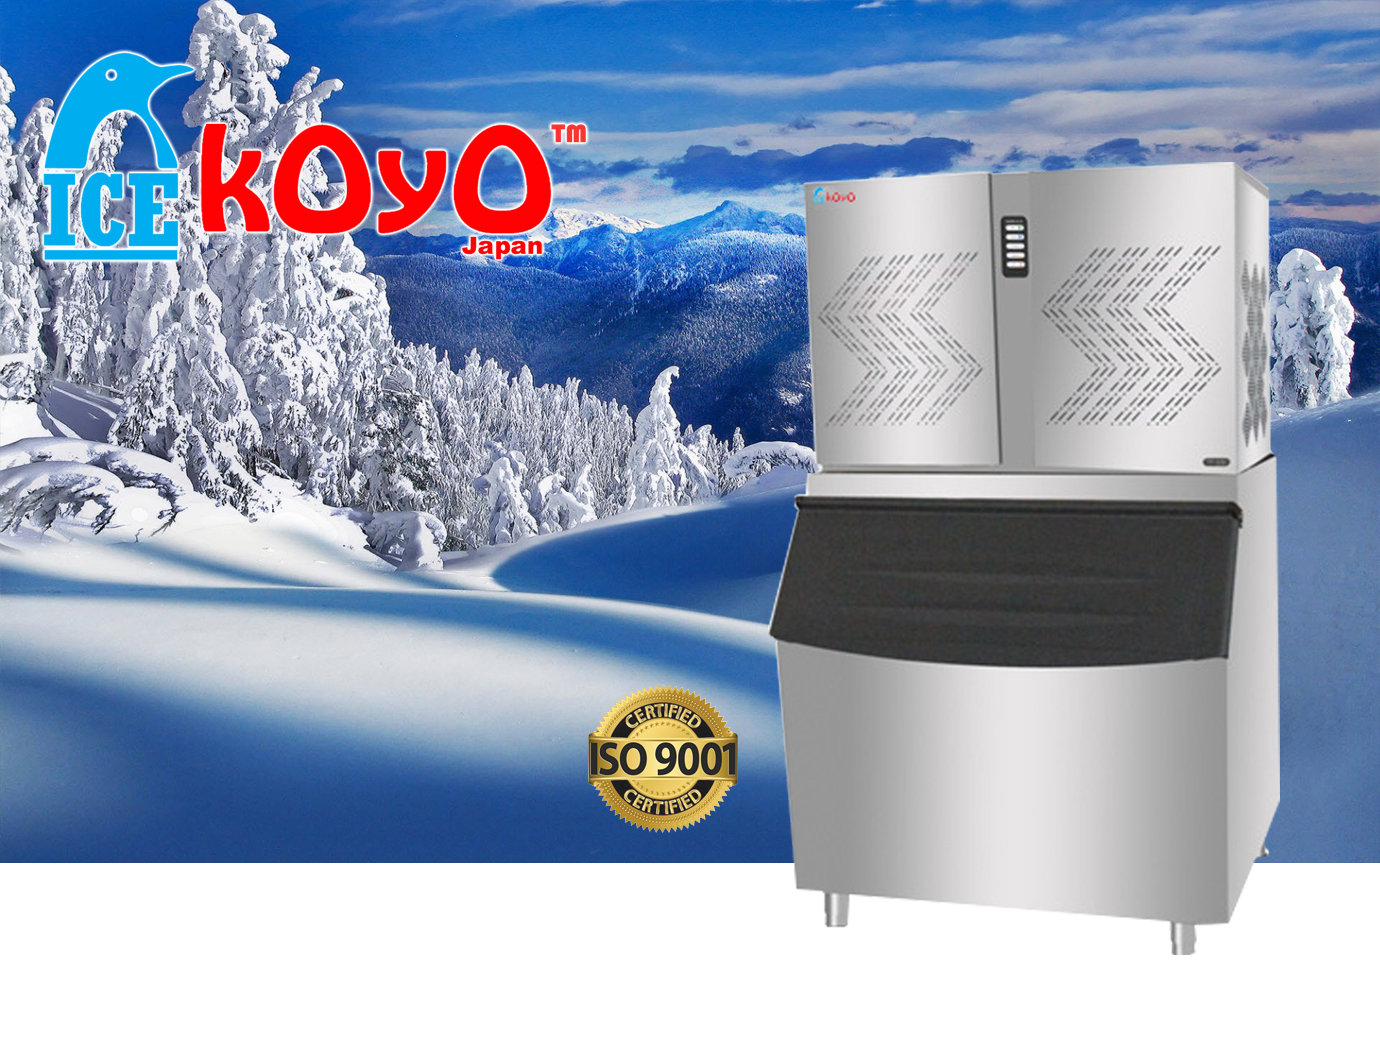 Koyo Ice Maker Machine